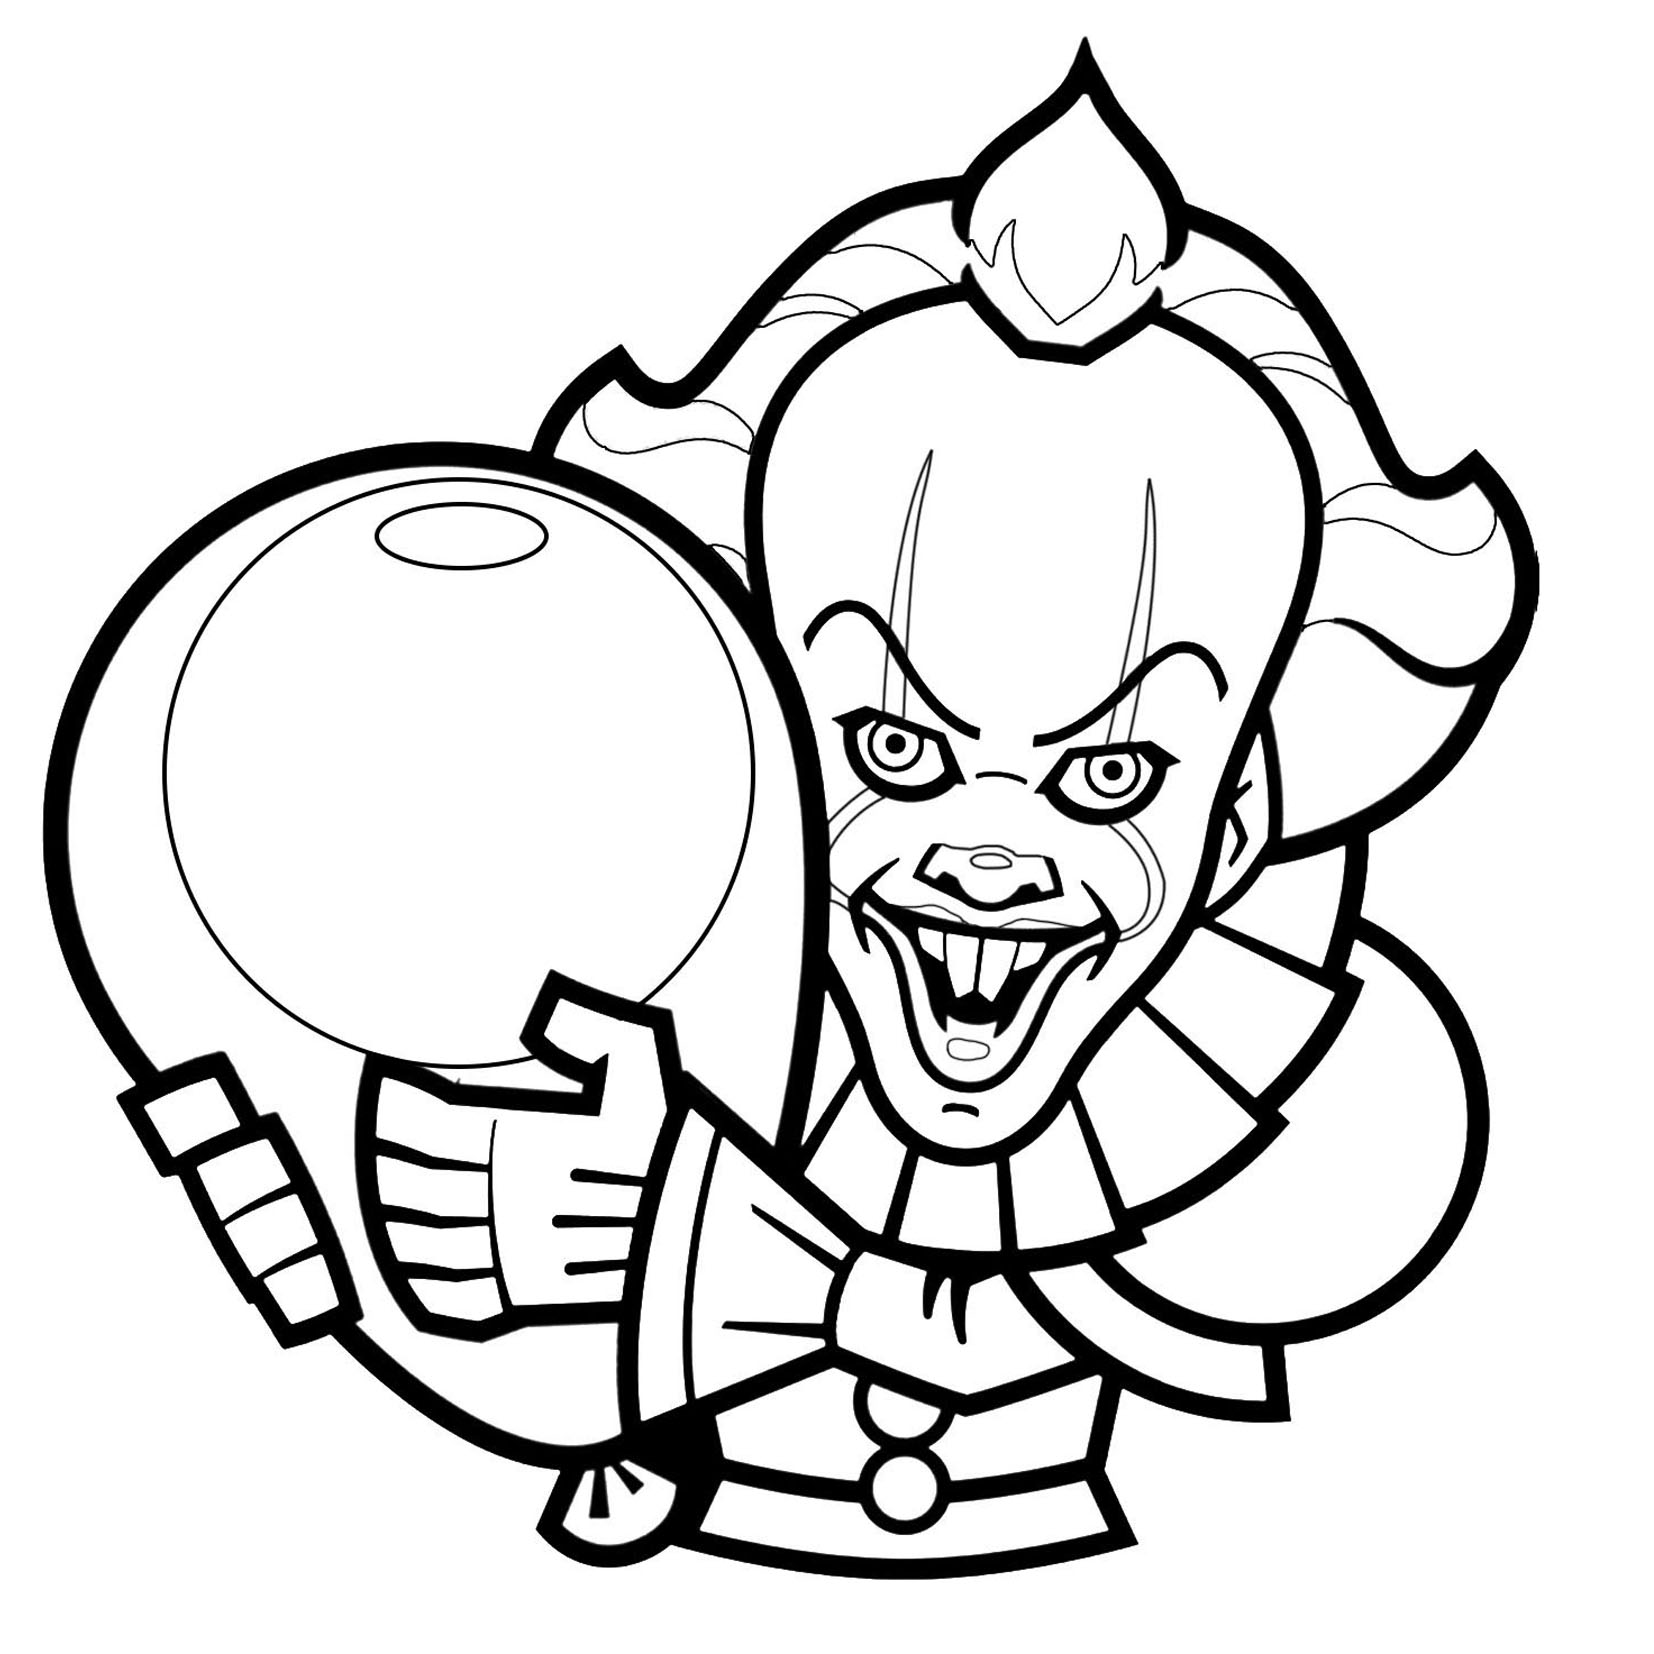 Coloriage Clown Ca.Clown De Ca Version 1 Coloriage Halloween Coloriages